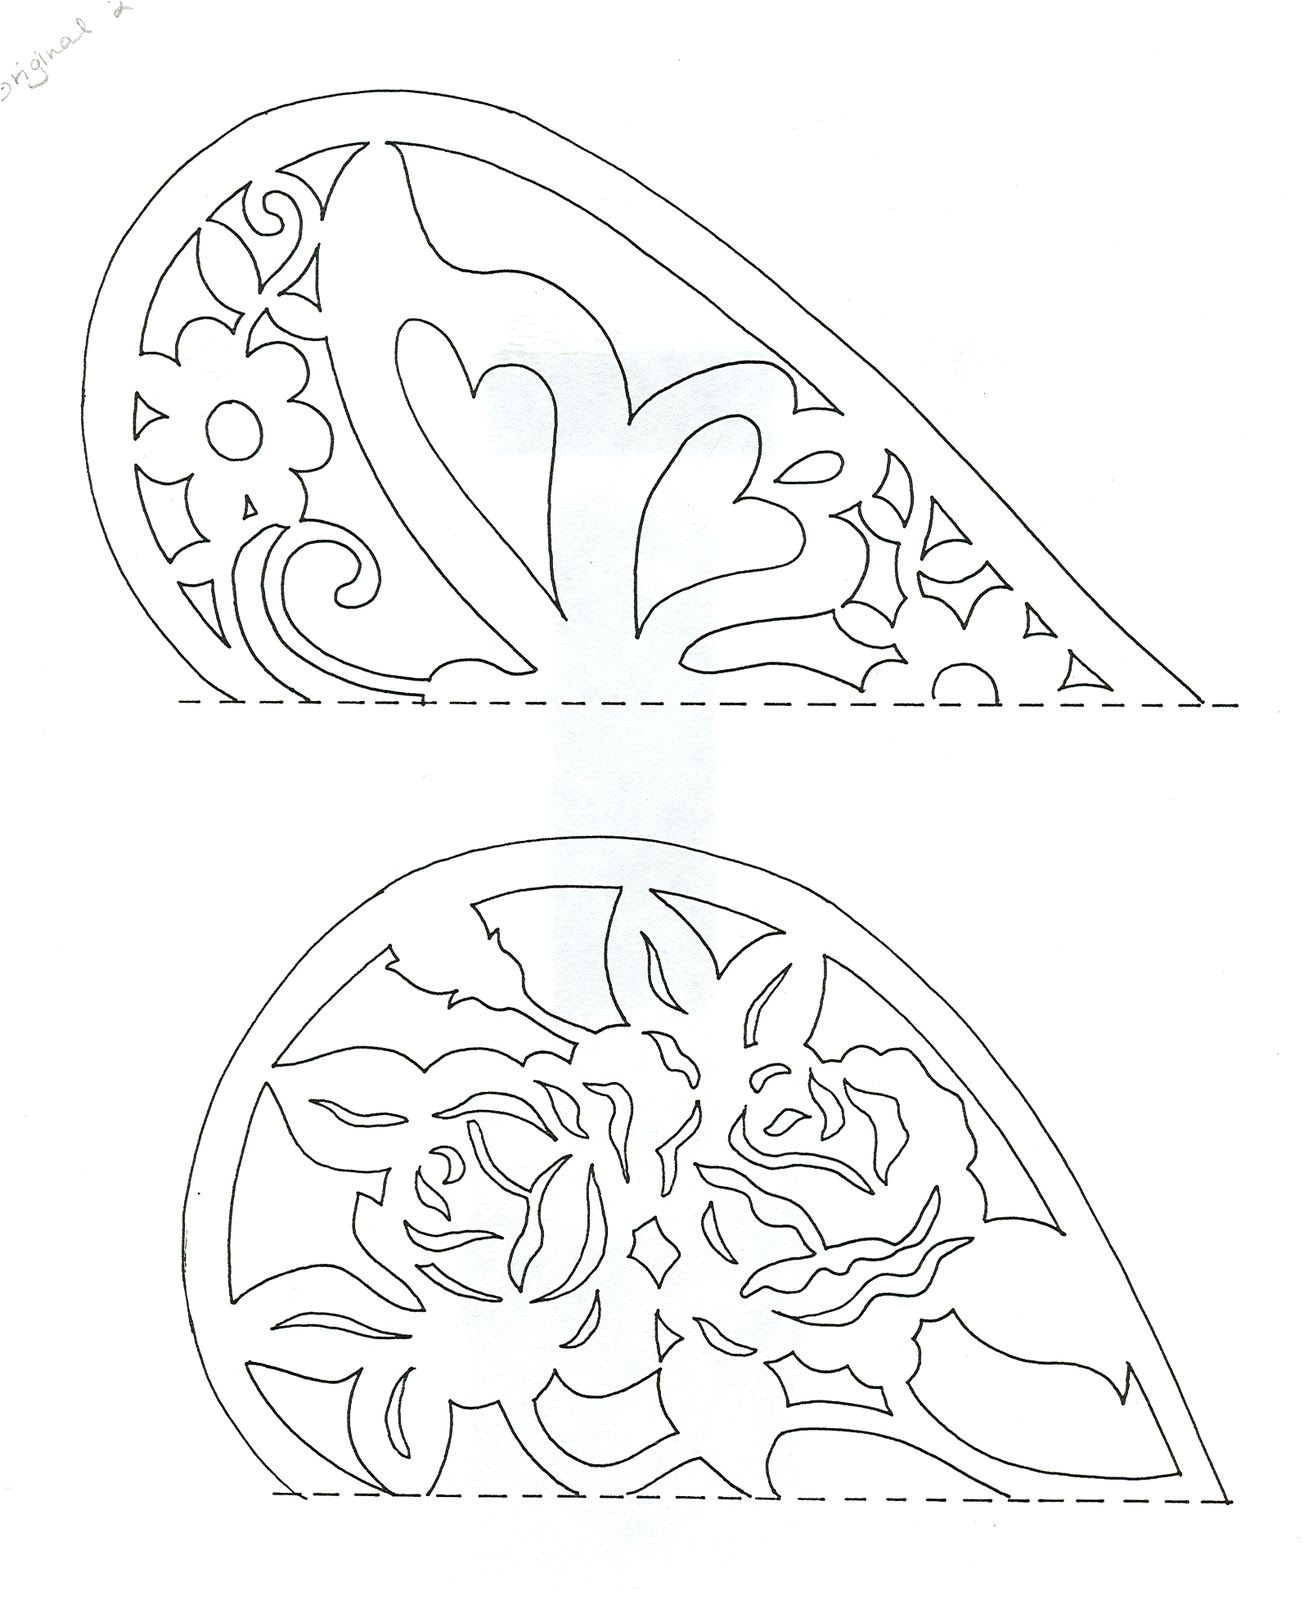 Paper Cutting Templates for Kids Easy Paper Cutting Patterns the top One Has the